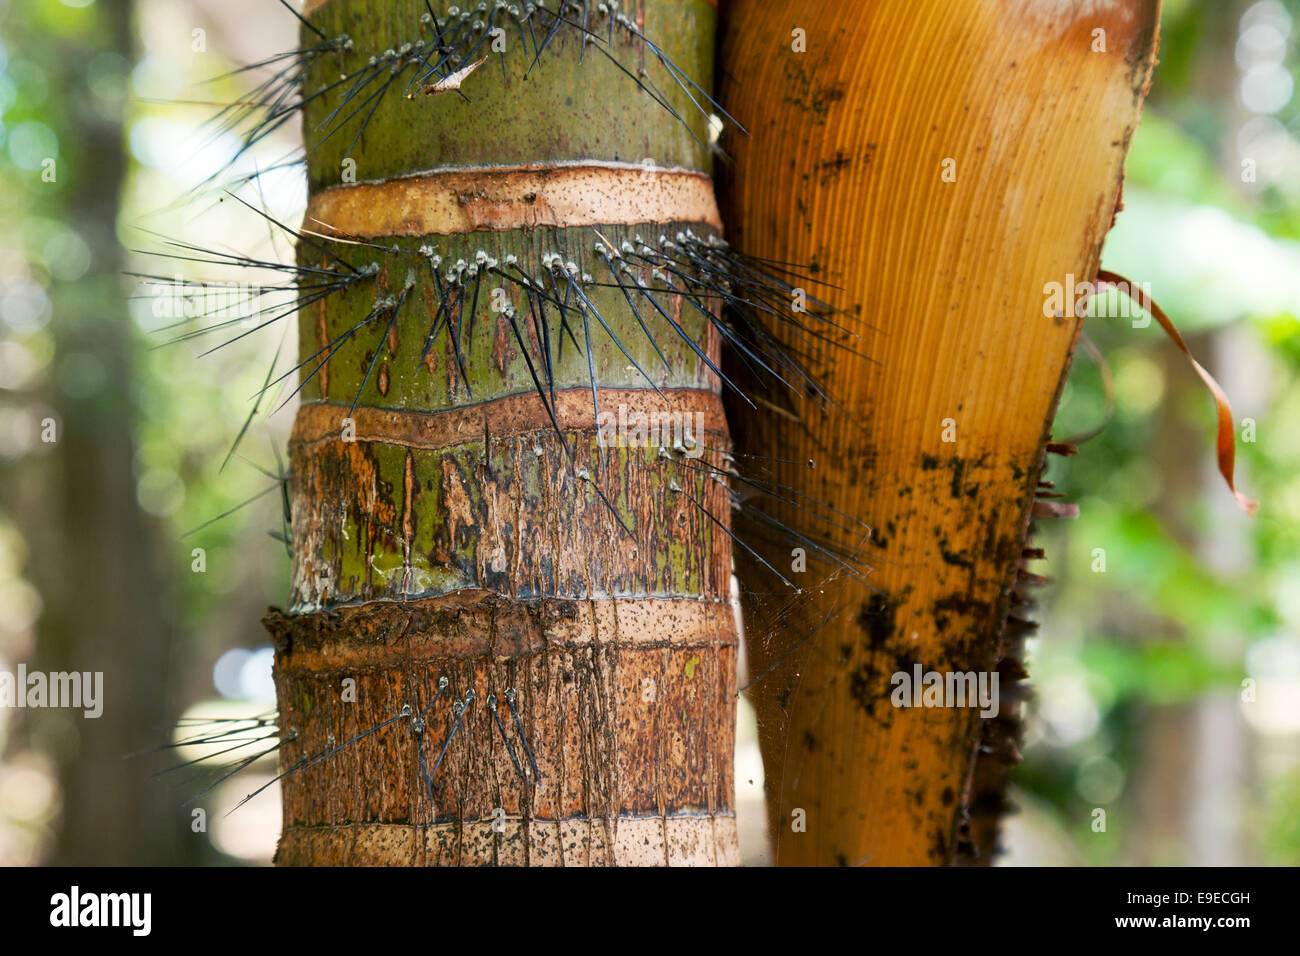 Close up of Bamboo showing protective spines - Stock Image